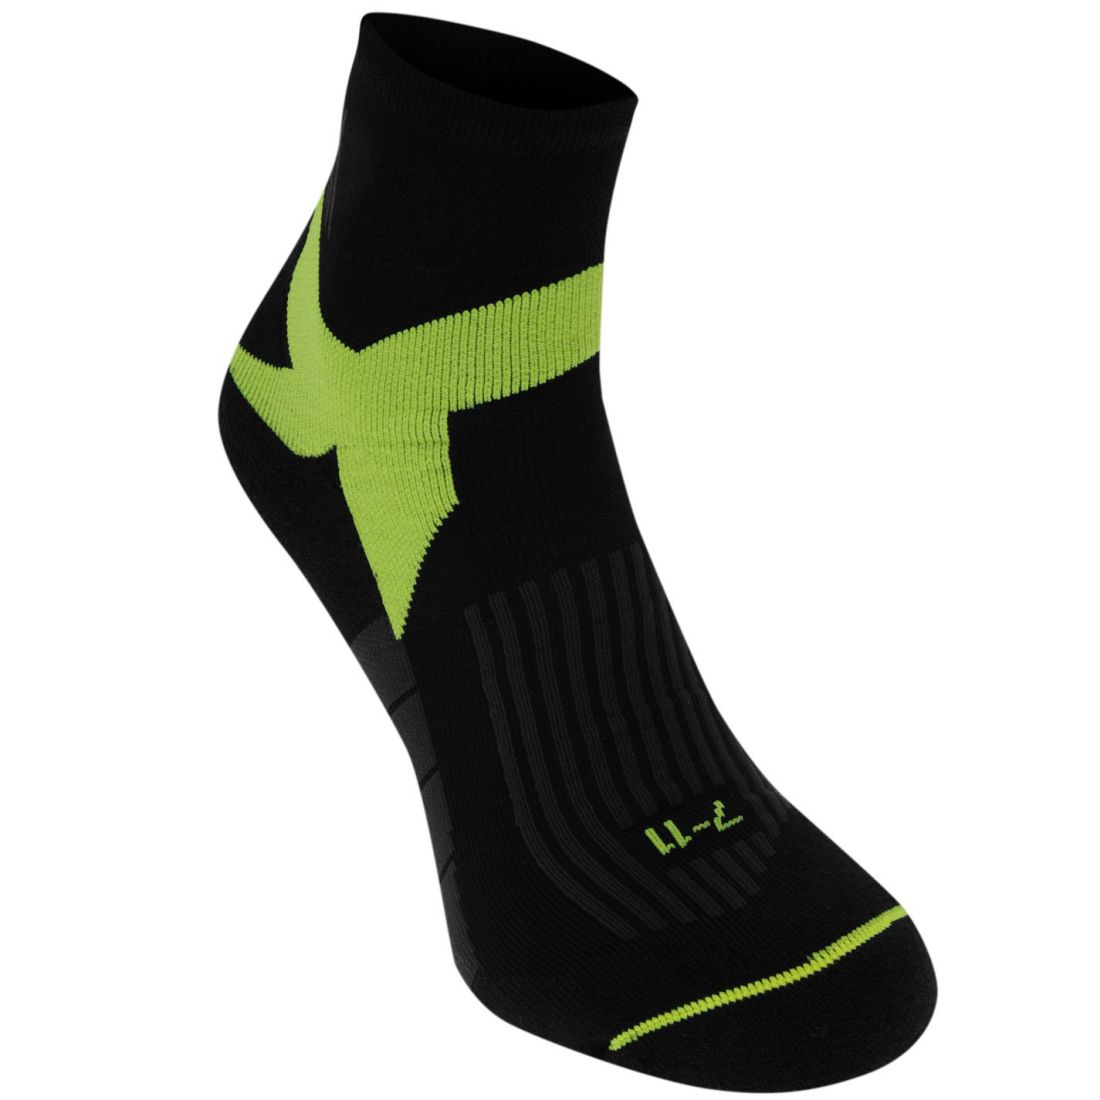 c7088d6d4 Karrimor Mens Supreme 1 Pack Running Socks Lightweight Sports ...